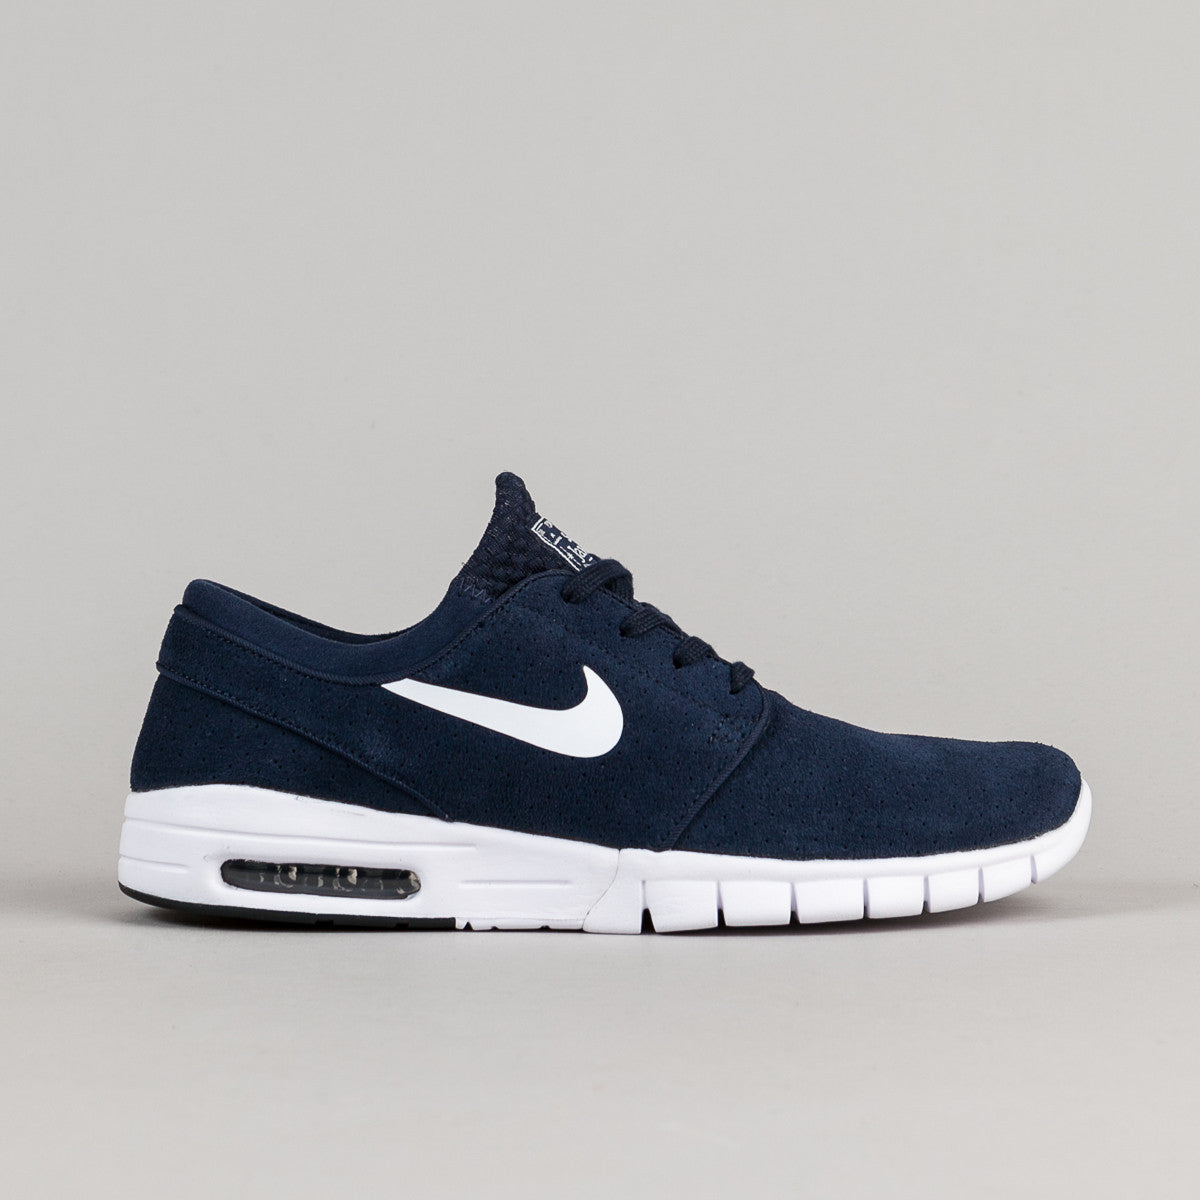 nike sb stefan janoski max suede shoes obsidian white obsidian flatspot. Black Bedroom Furniture Sets. Home Design Ideas